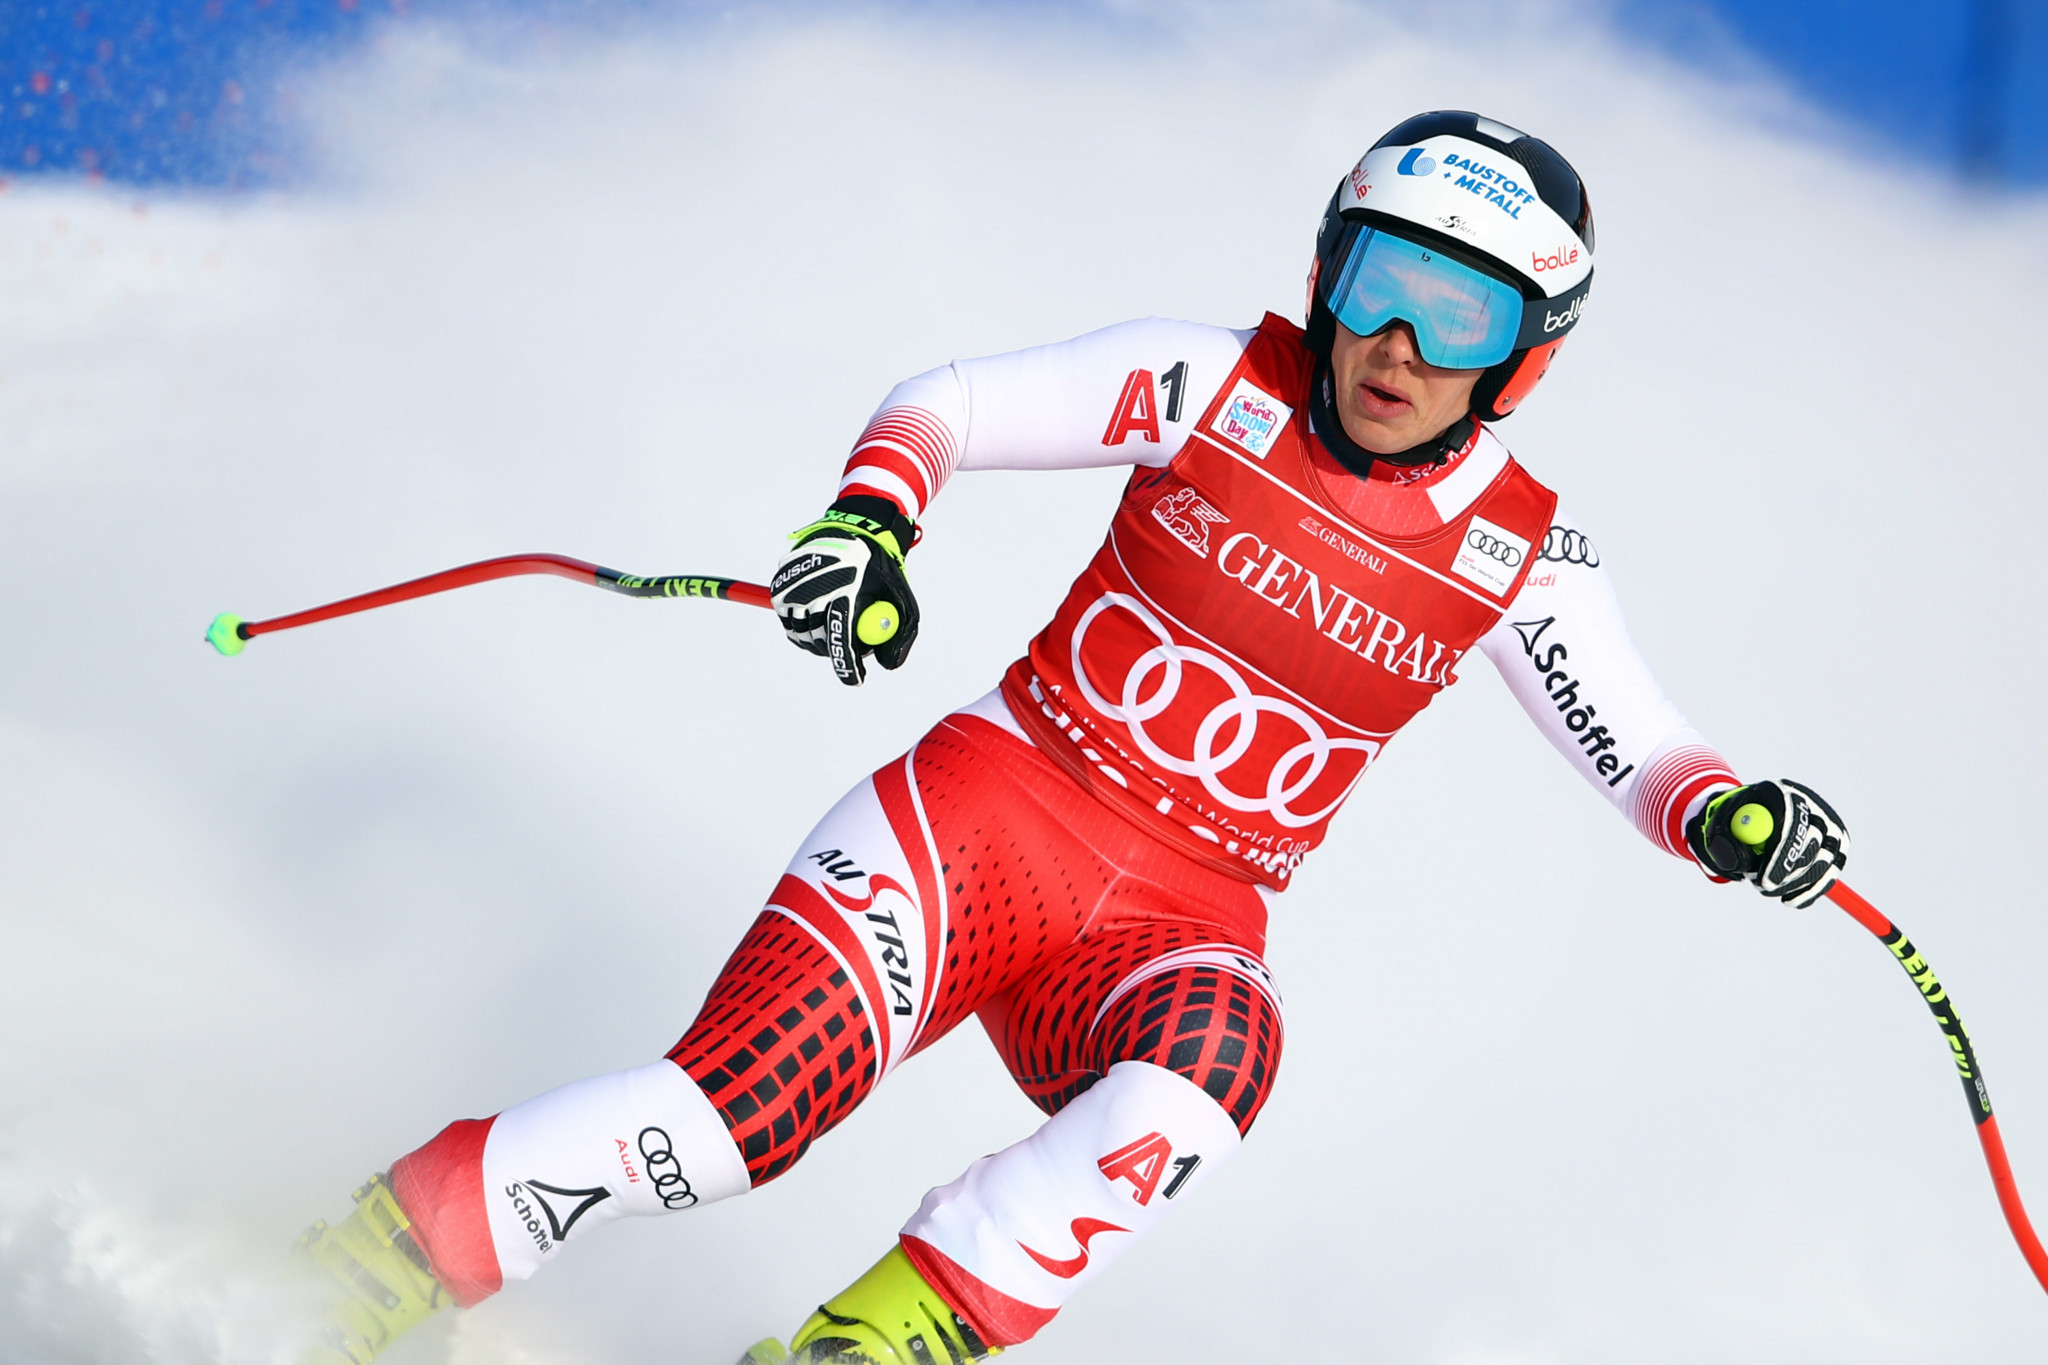 Nicole Schmidhofer won her second consecutive downhill race in Lake Louise ©Getty Images